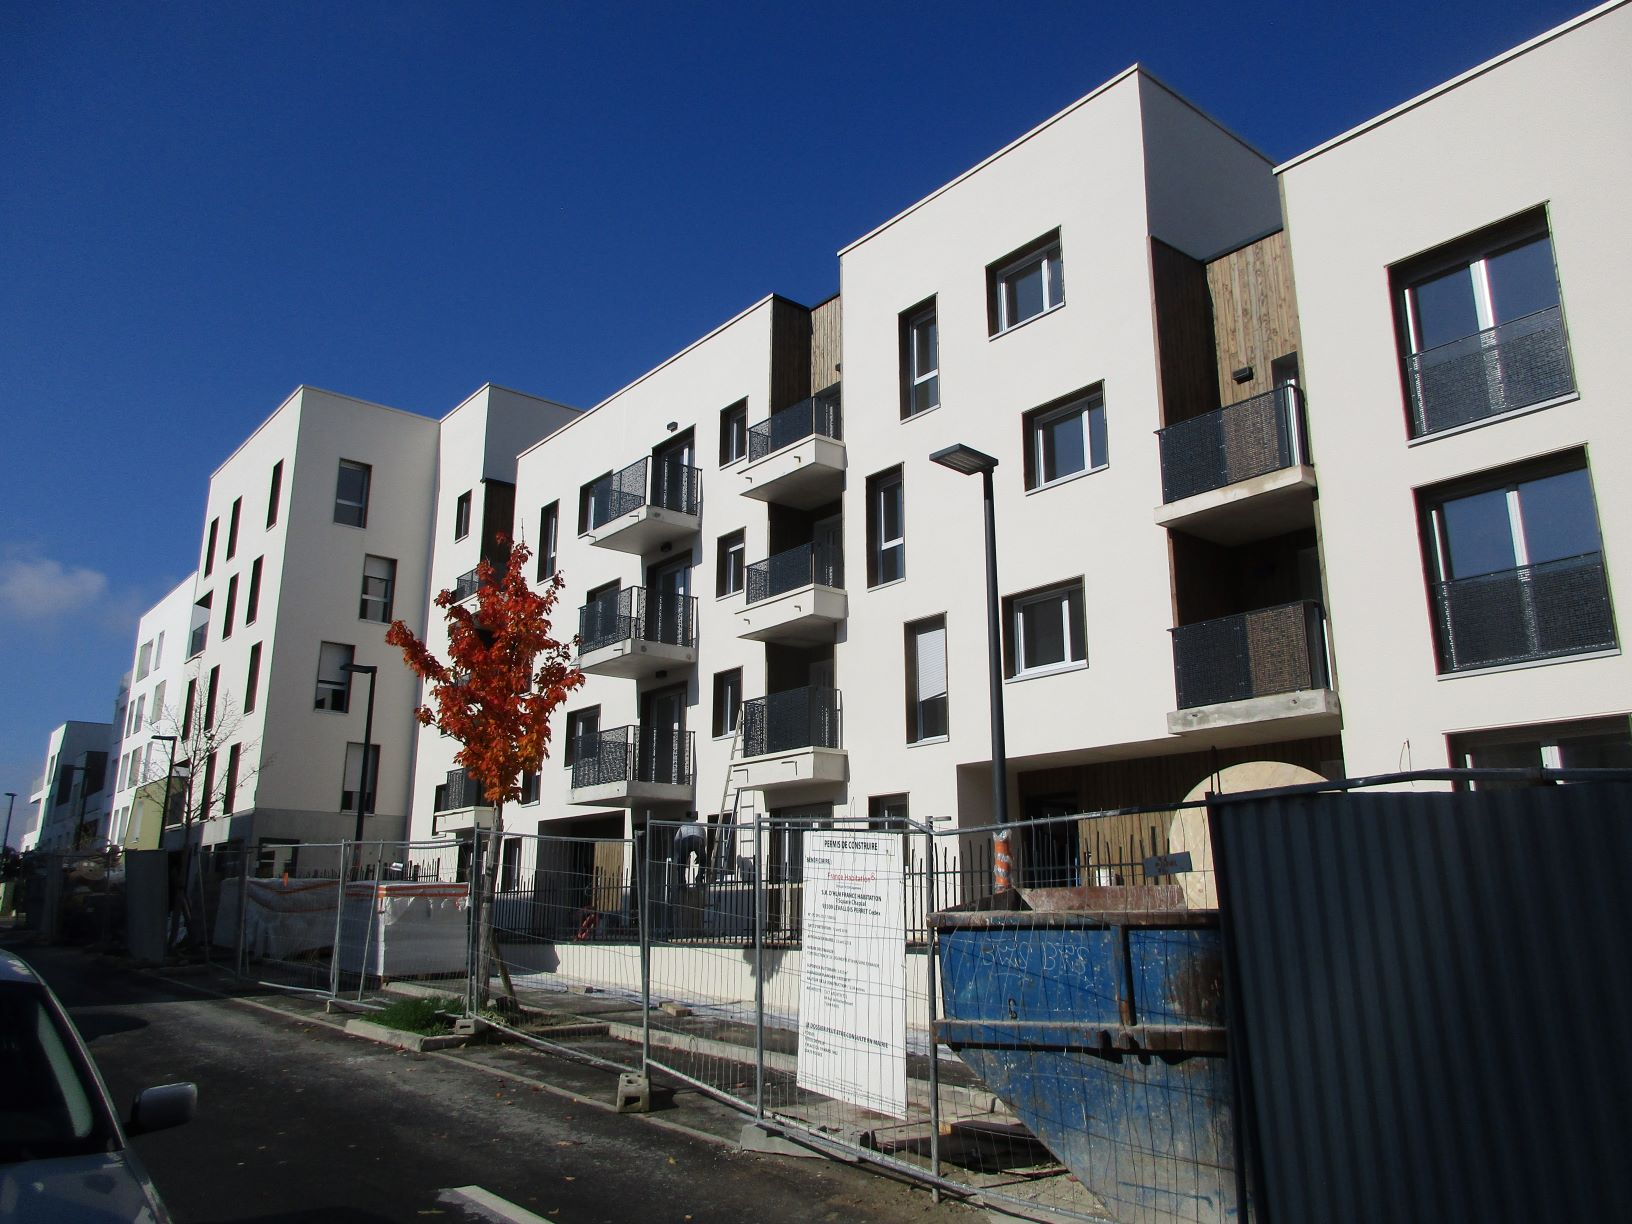 immeubles_rue_louise-michel_en_construction.jpg